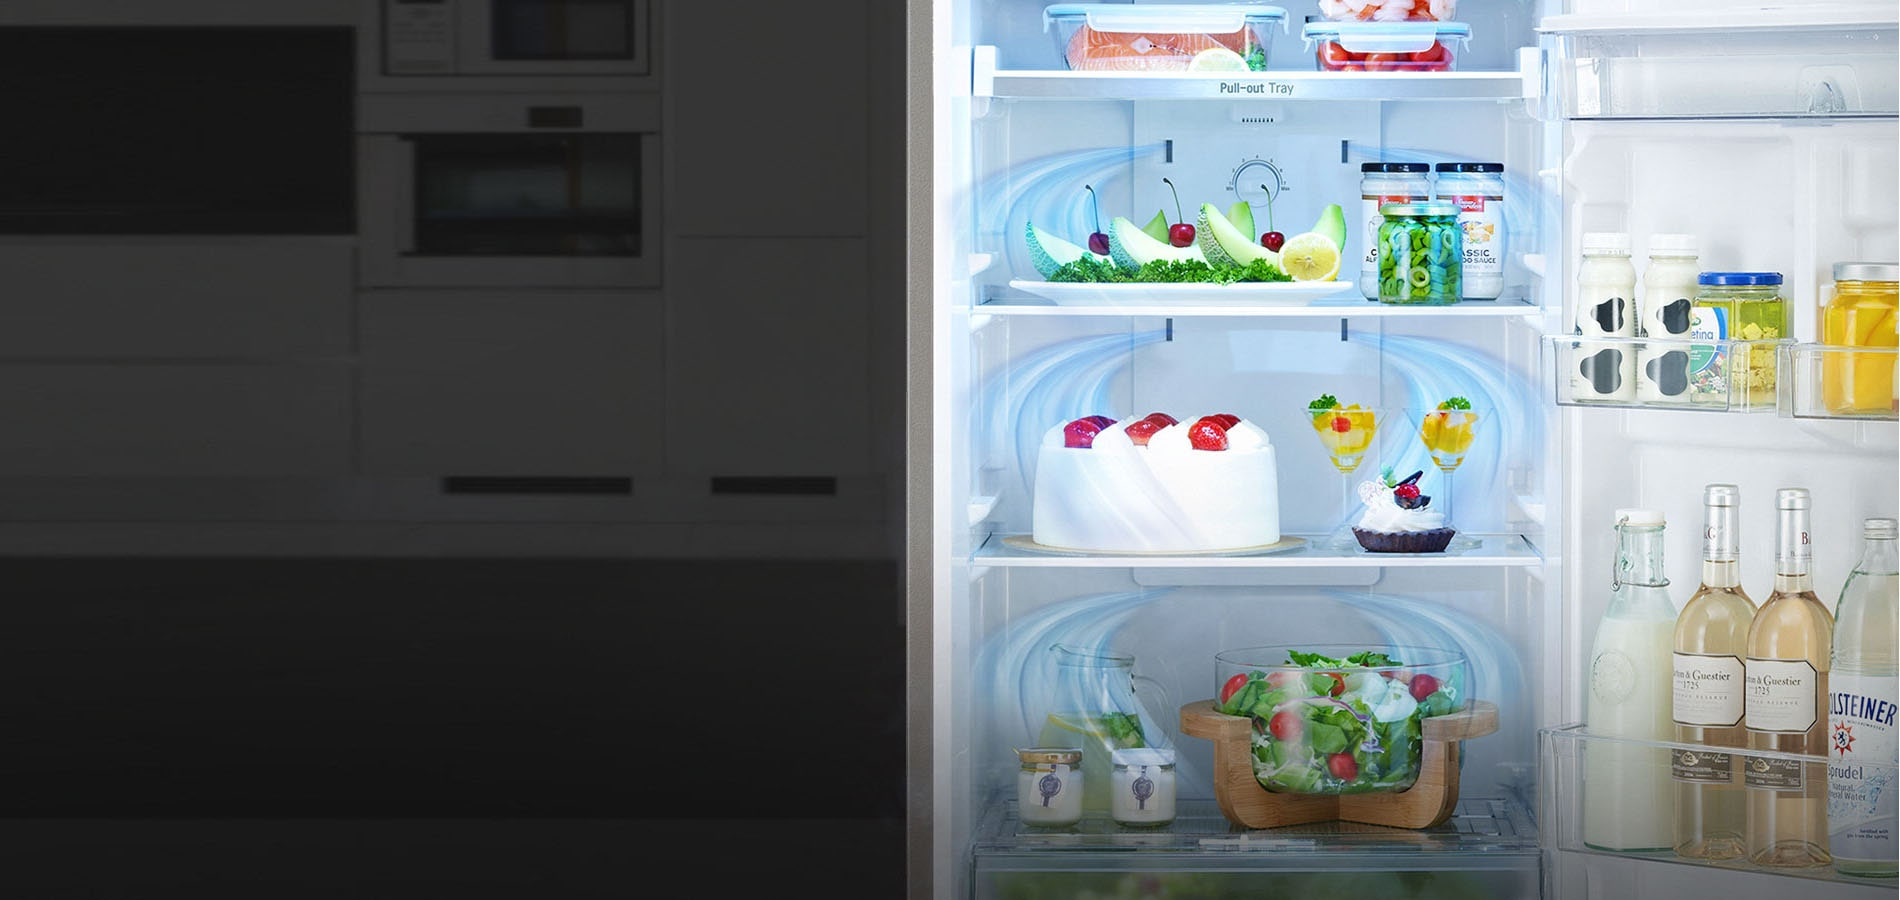 LG Double Door Refrigerator With Multi Air Flow